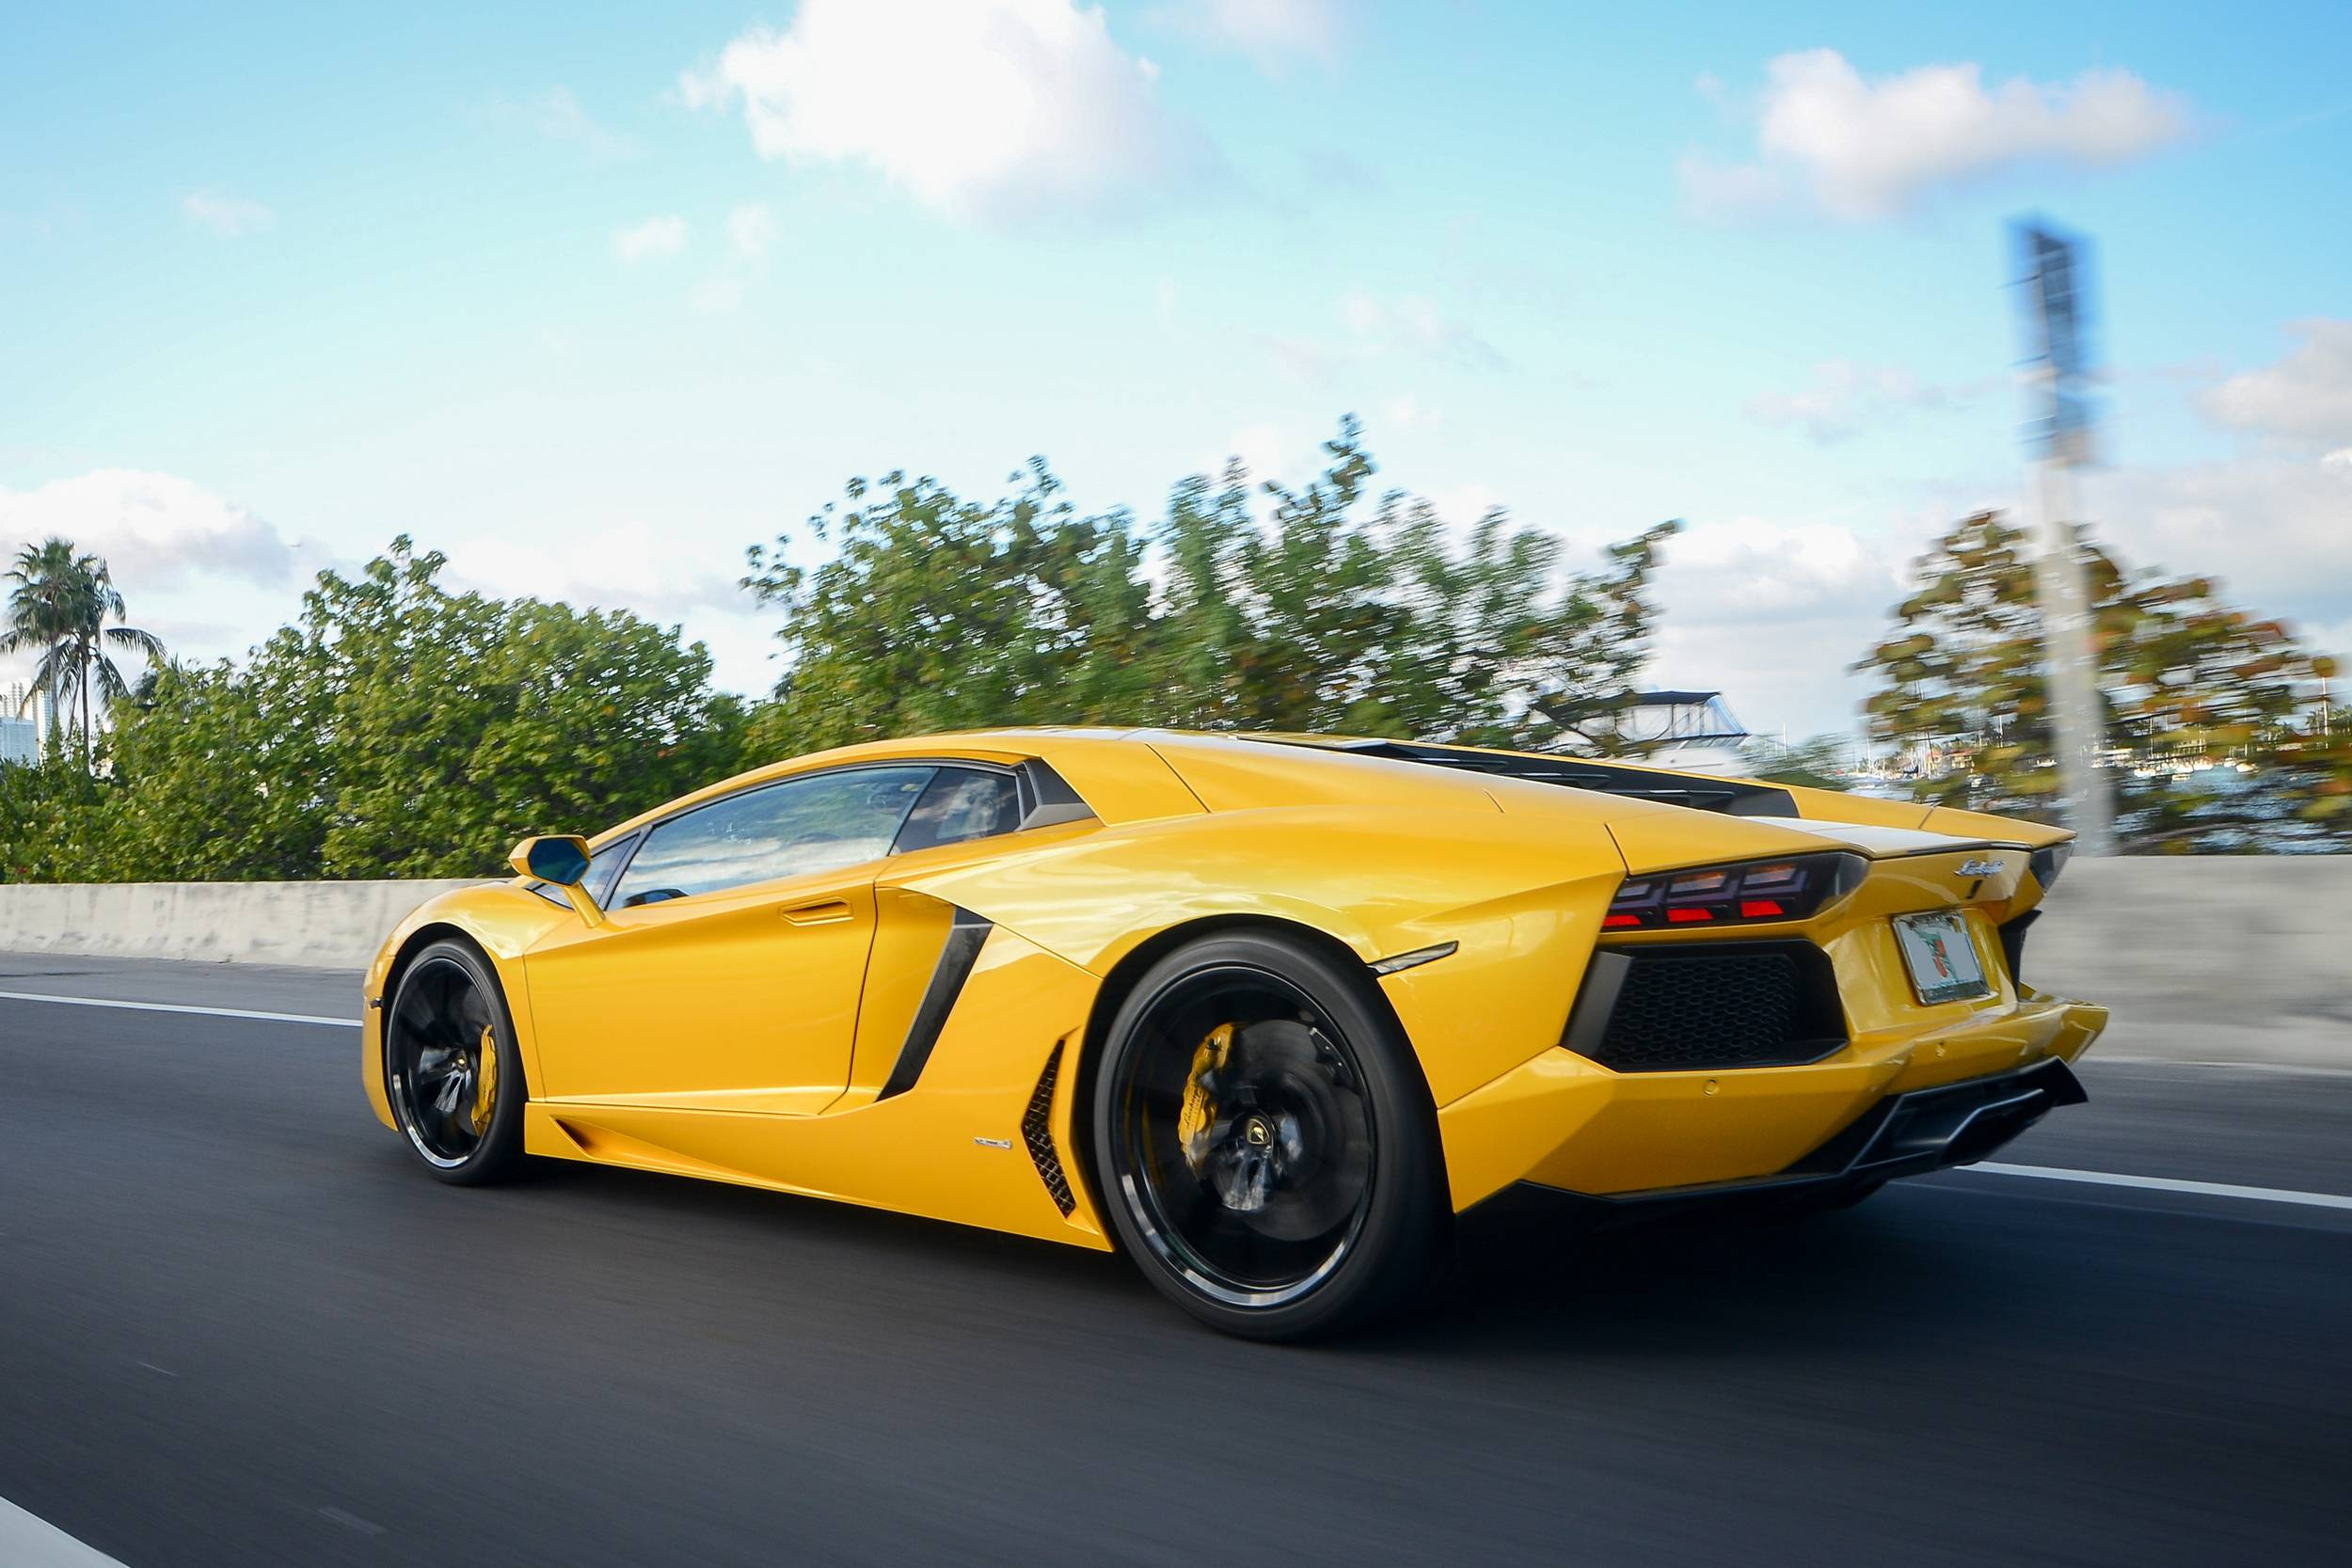 the los rent successor gallardo spyder is in lamborghini aventador rentals baby that angeles don you flagship current a rental for exotic miami img fool brother t let but carbon to huracan